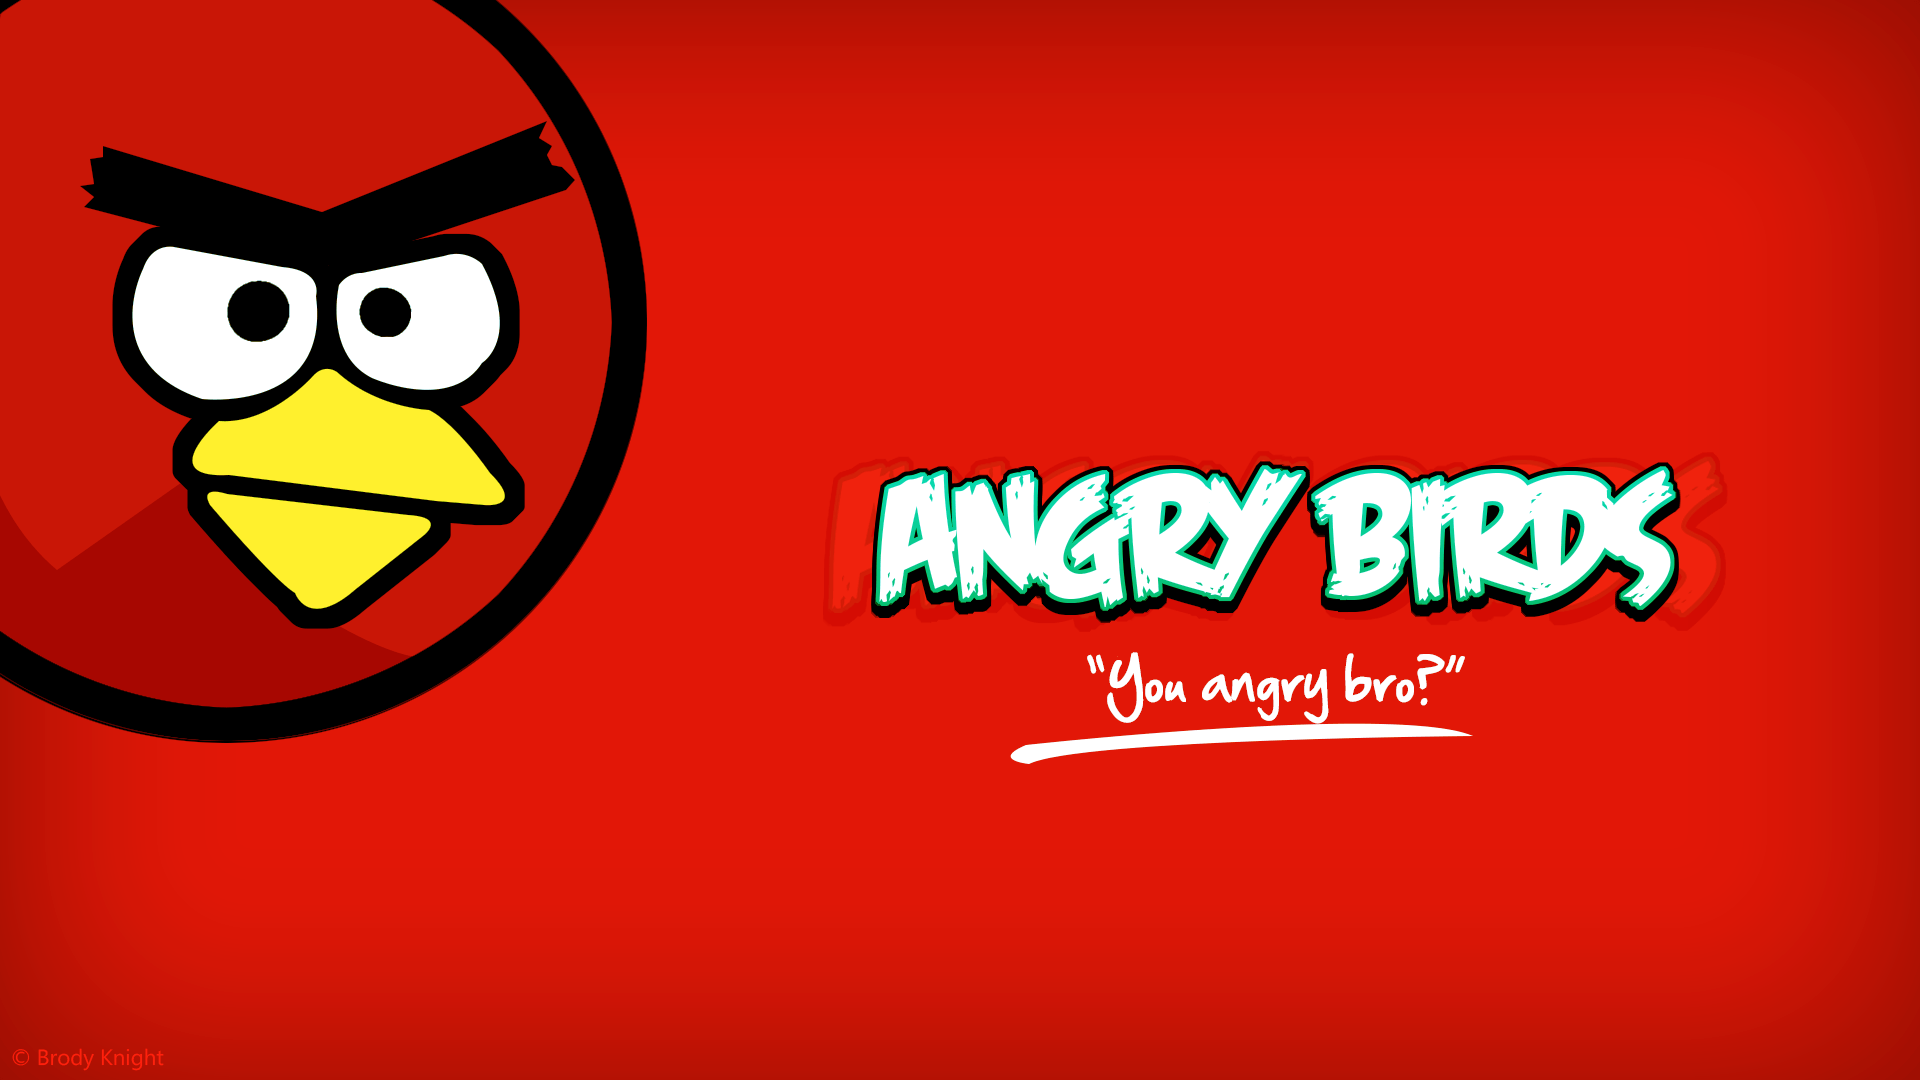 HD Wallpapers Of Angry Birds Group 93